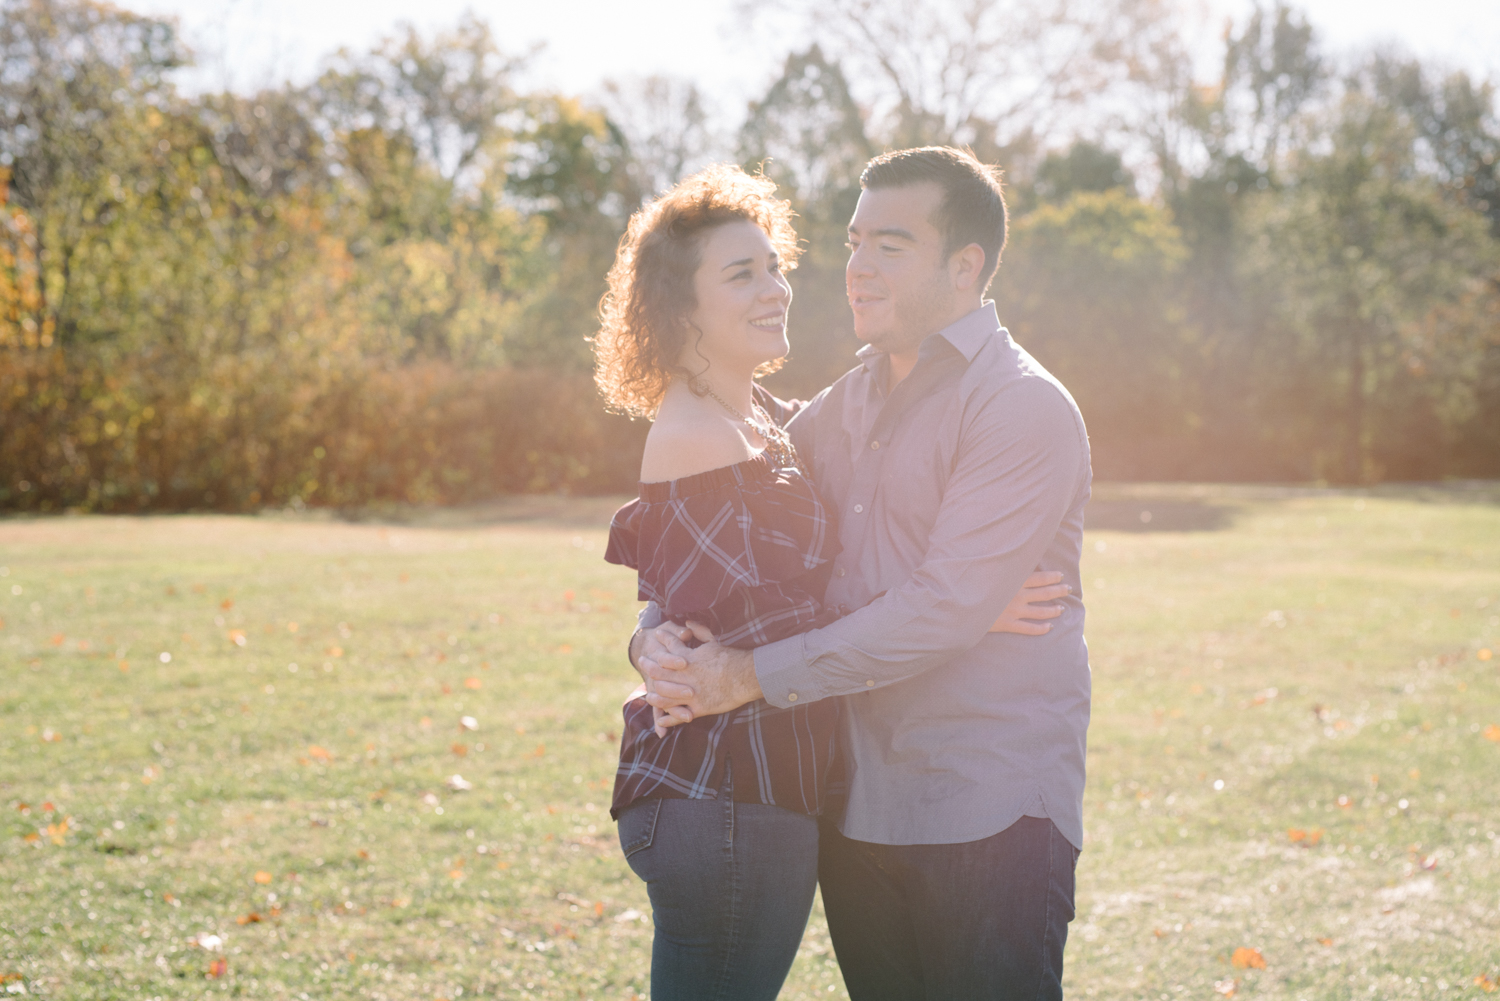 Melissa+Kenny- Watsessing Park Fall Engagement Session- Bloomfield New Jersey- Olivia Christina Photo-32.JPG